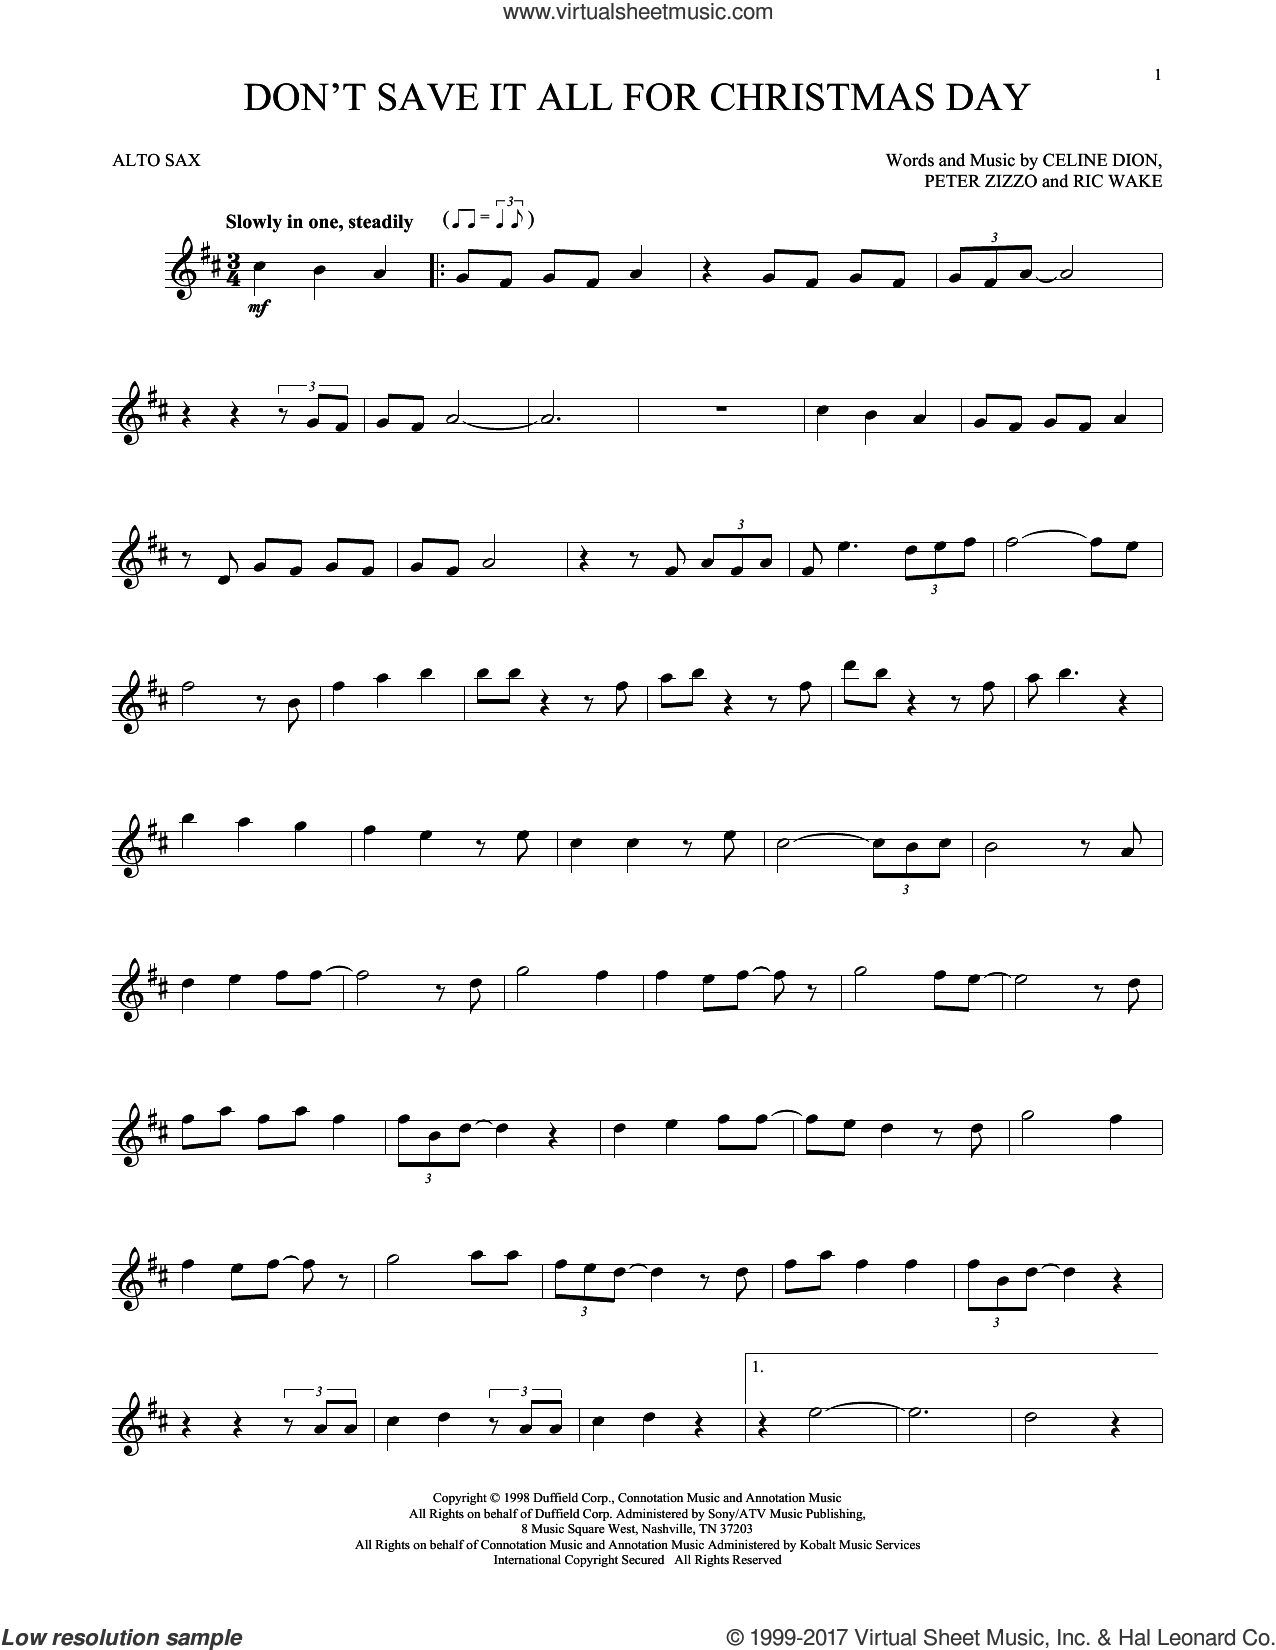 Don't Save It All For Christmas Day sheet music for alto saxophone solo by Celine Dion, Avalon, Peter Zizzo and Ric Wake, intermediate